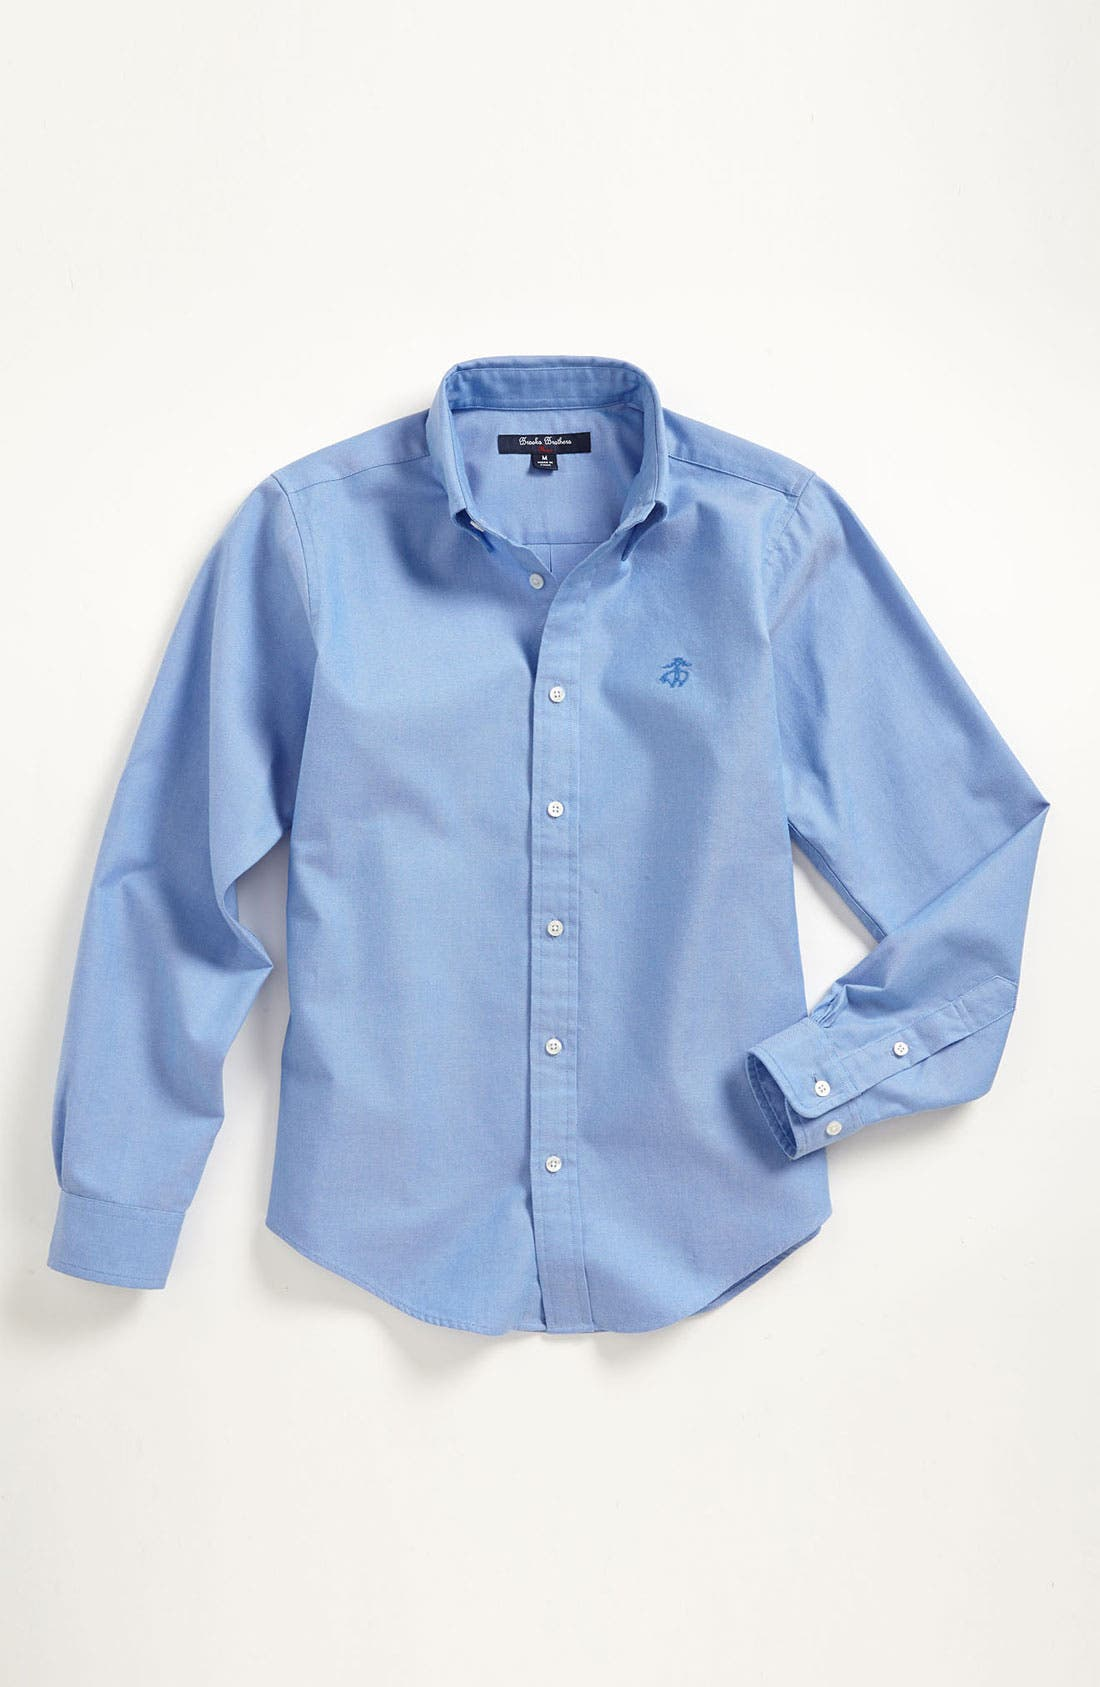 Alternate Image 1 Selected - Brooks Brothers Oxford Sport Shirt (Big Boys)